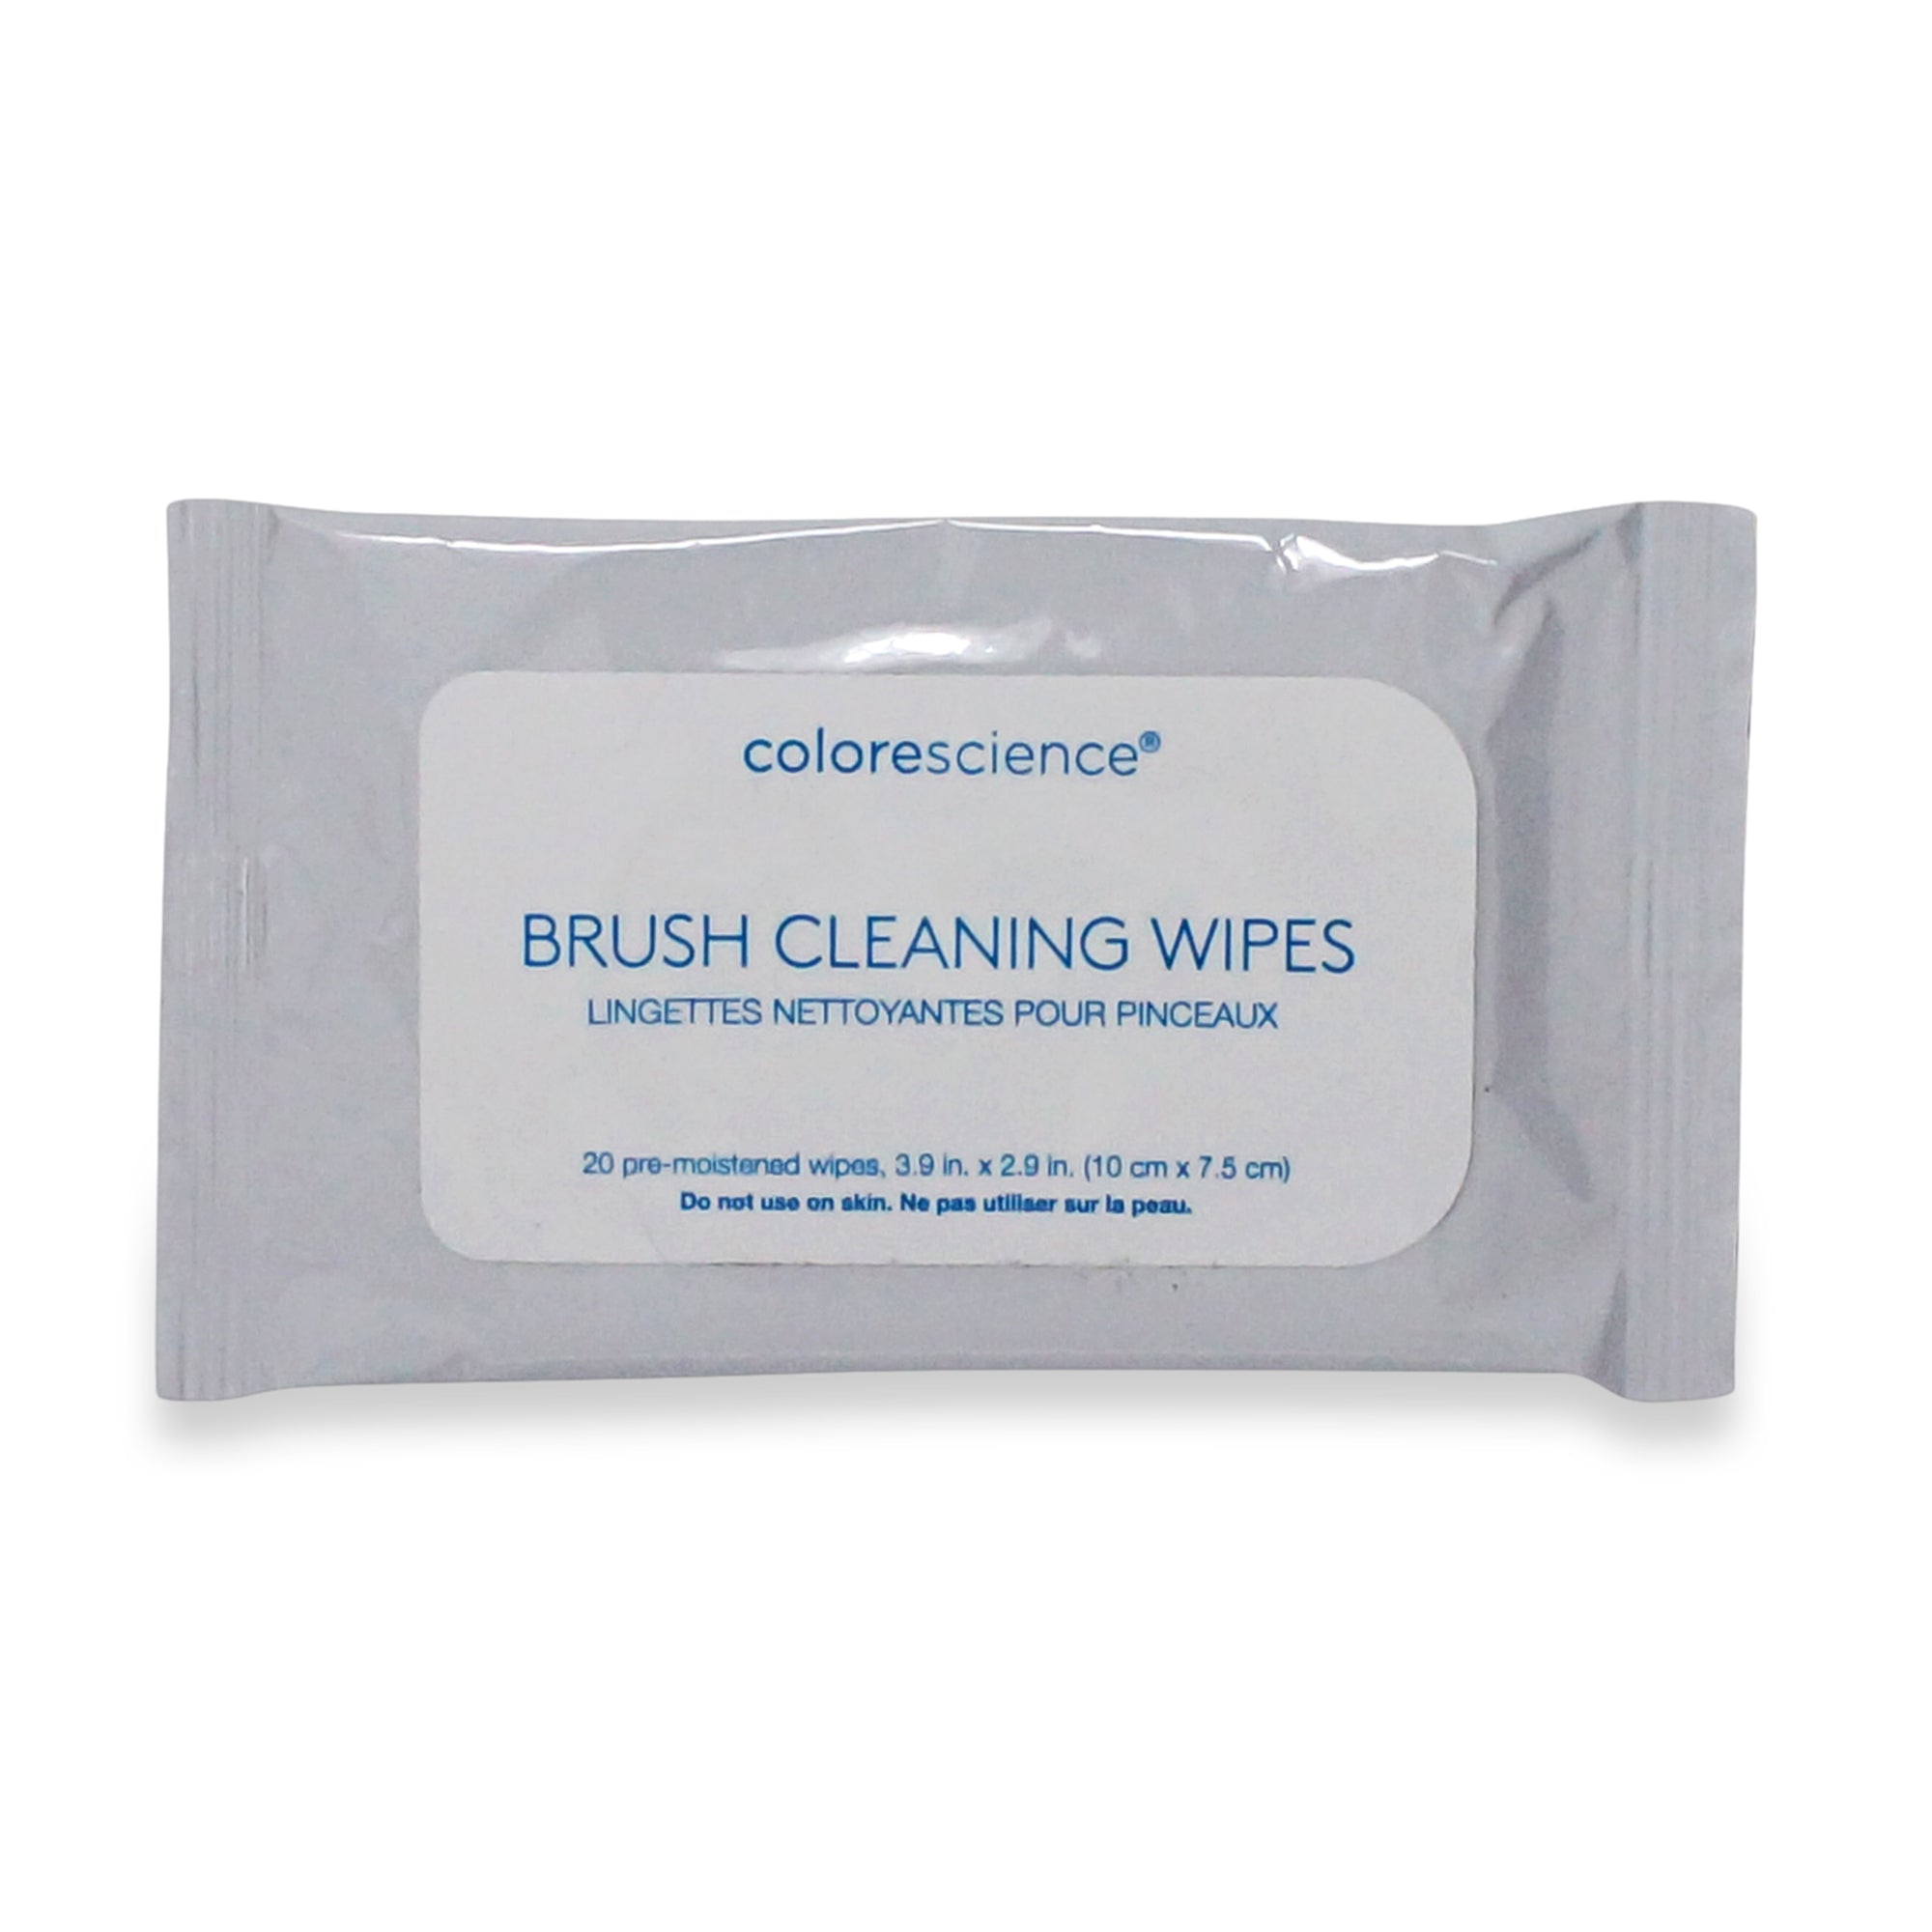 COLORESCIENCE ~ BRUSH CLEANING WIPES 20 PACK **NEW**